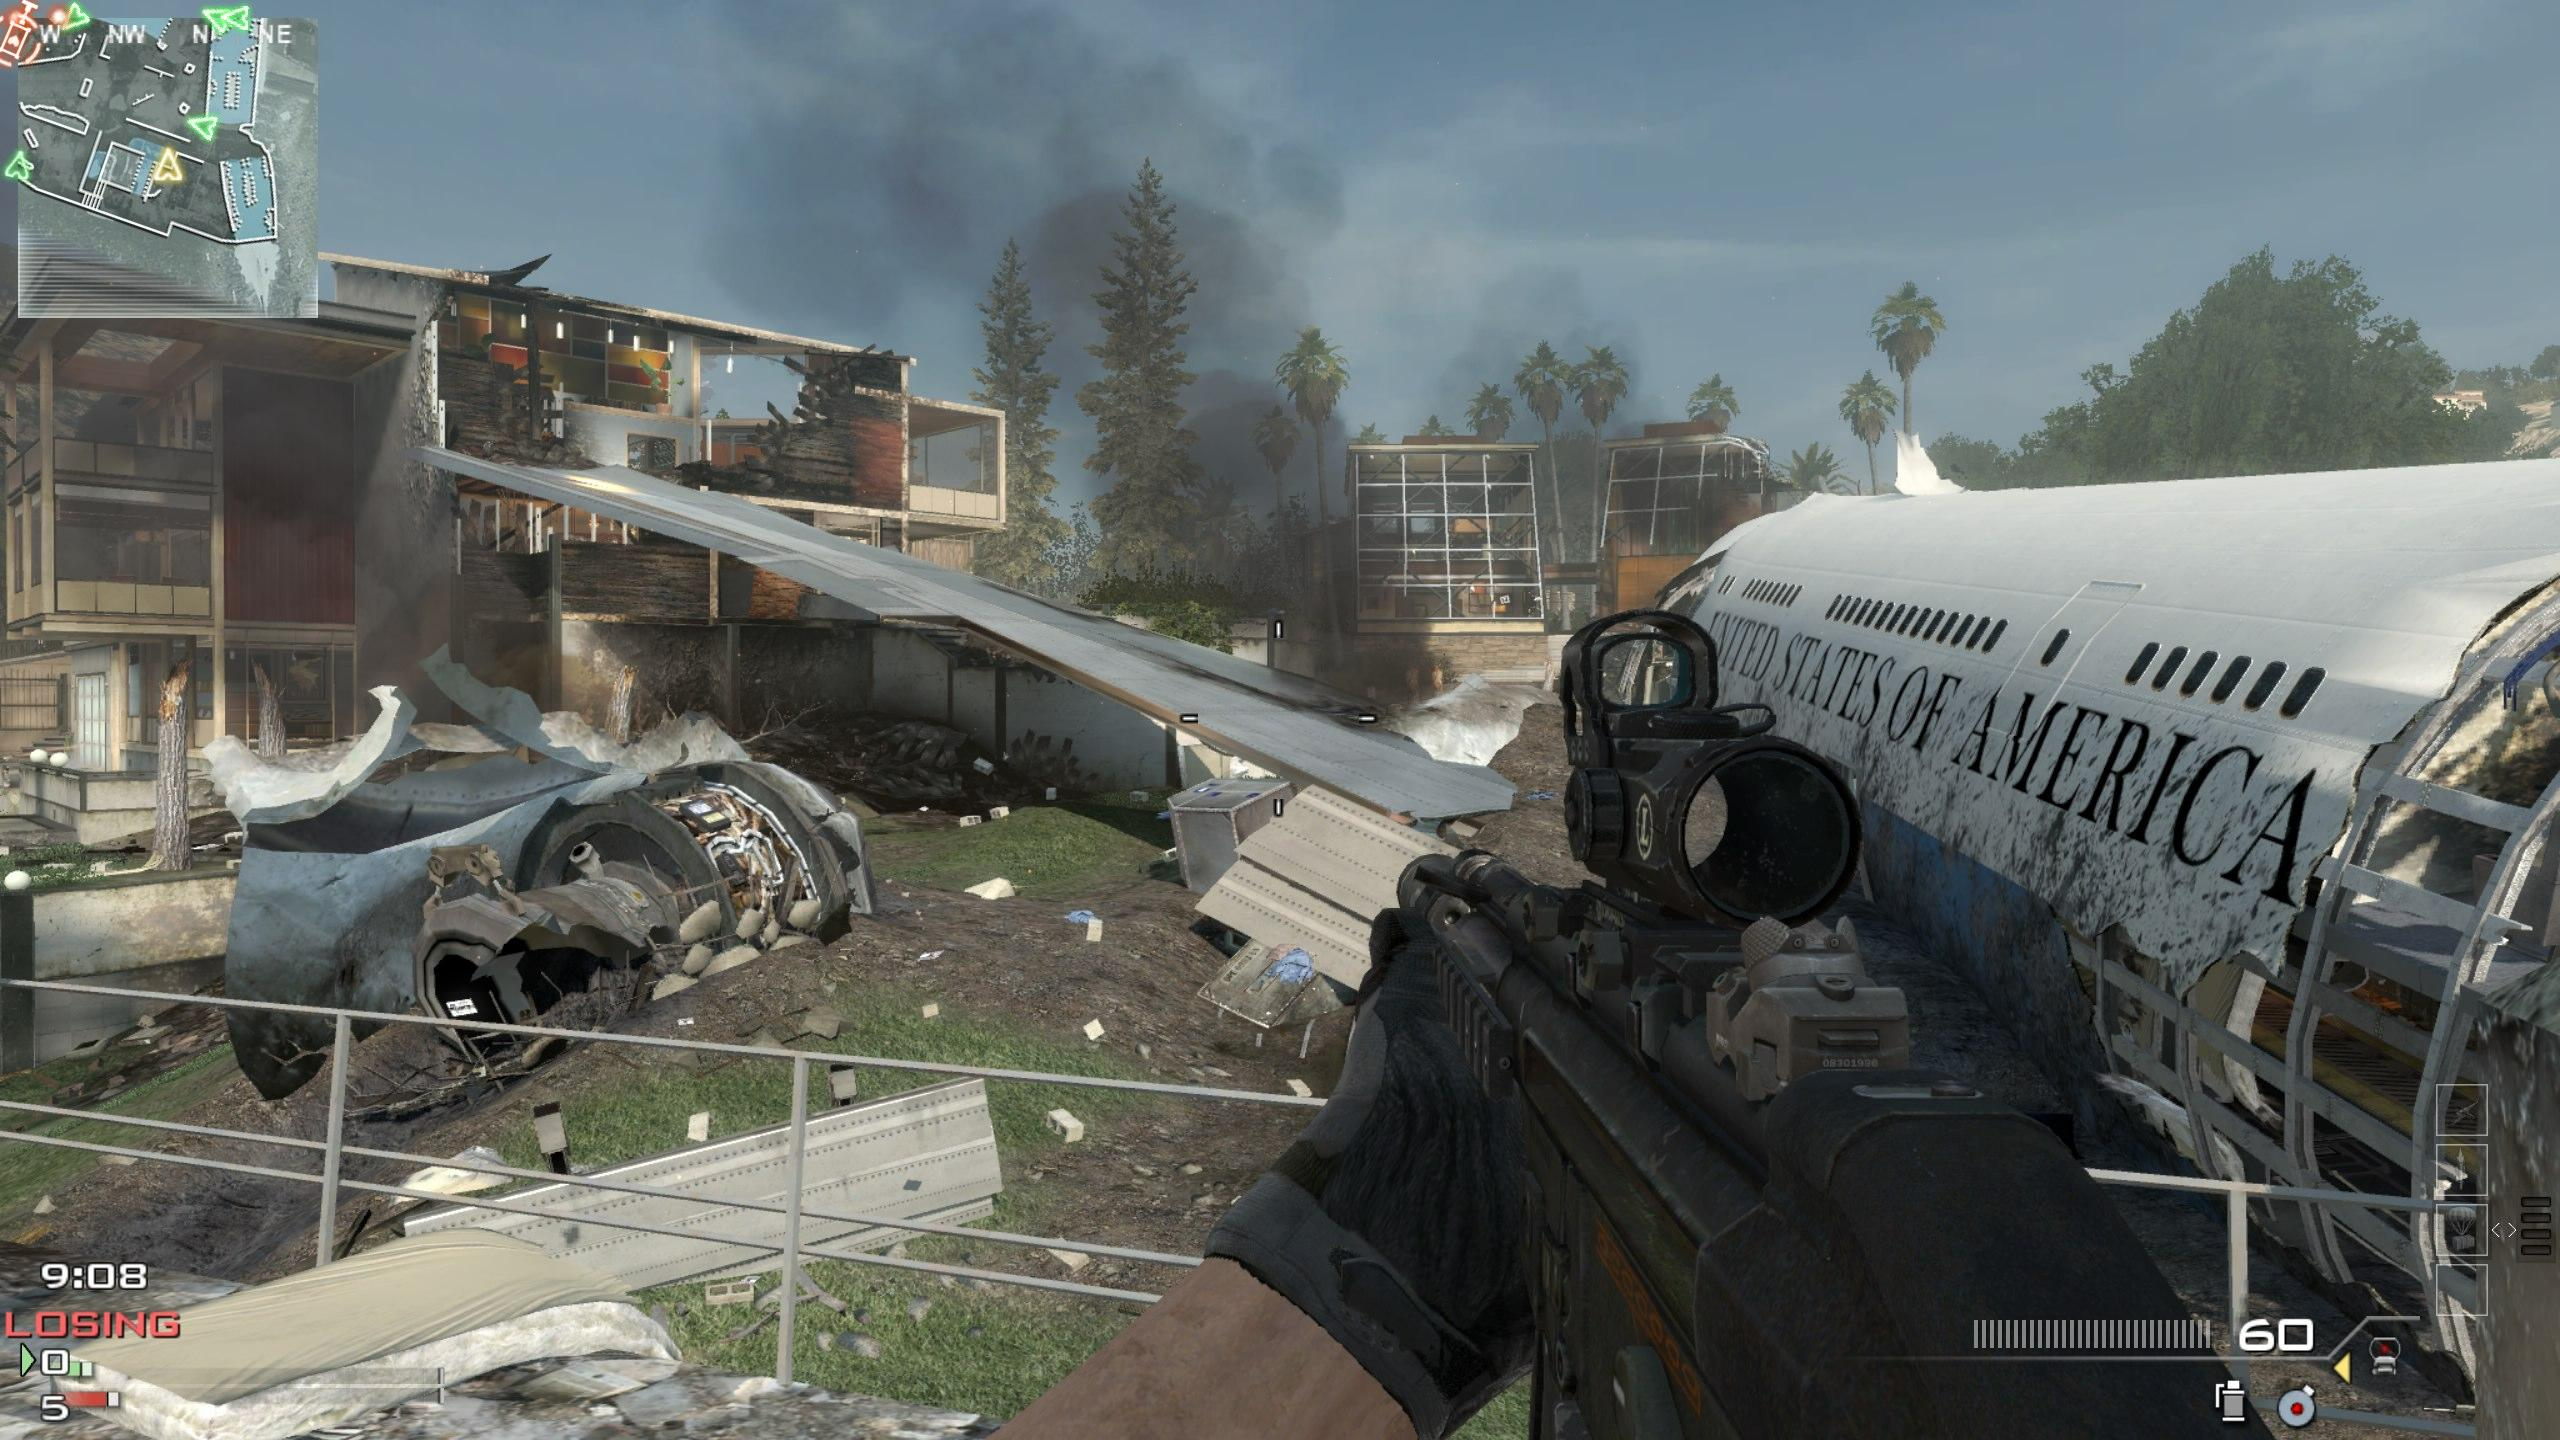 mw3 survival mode titles for essays